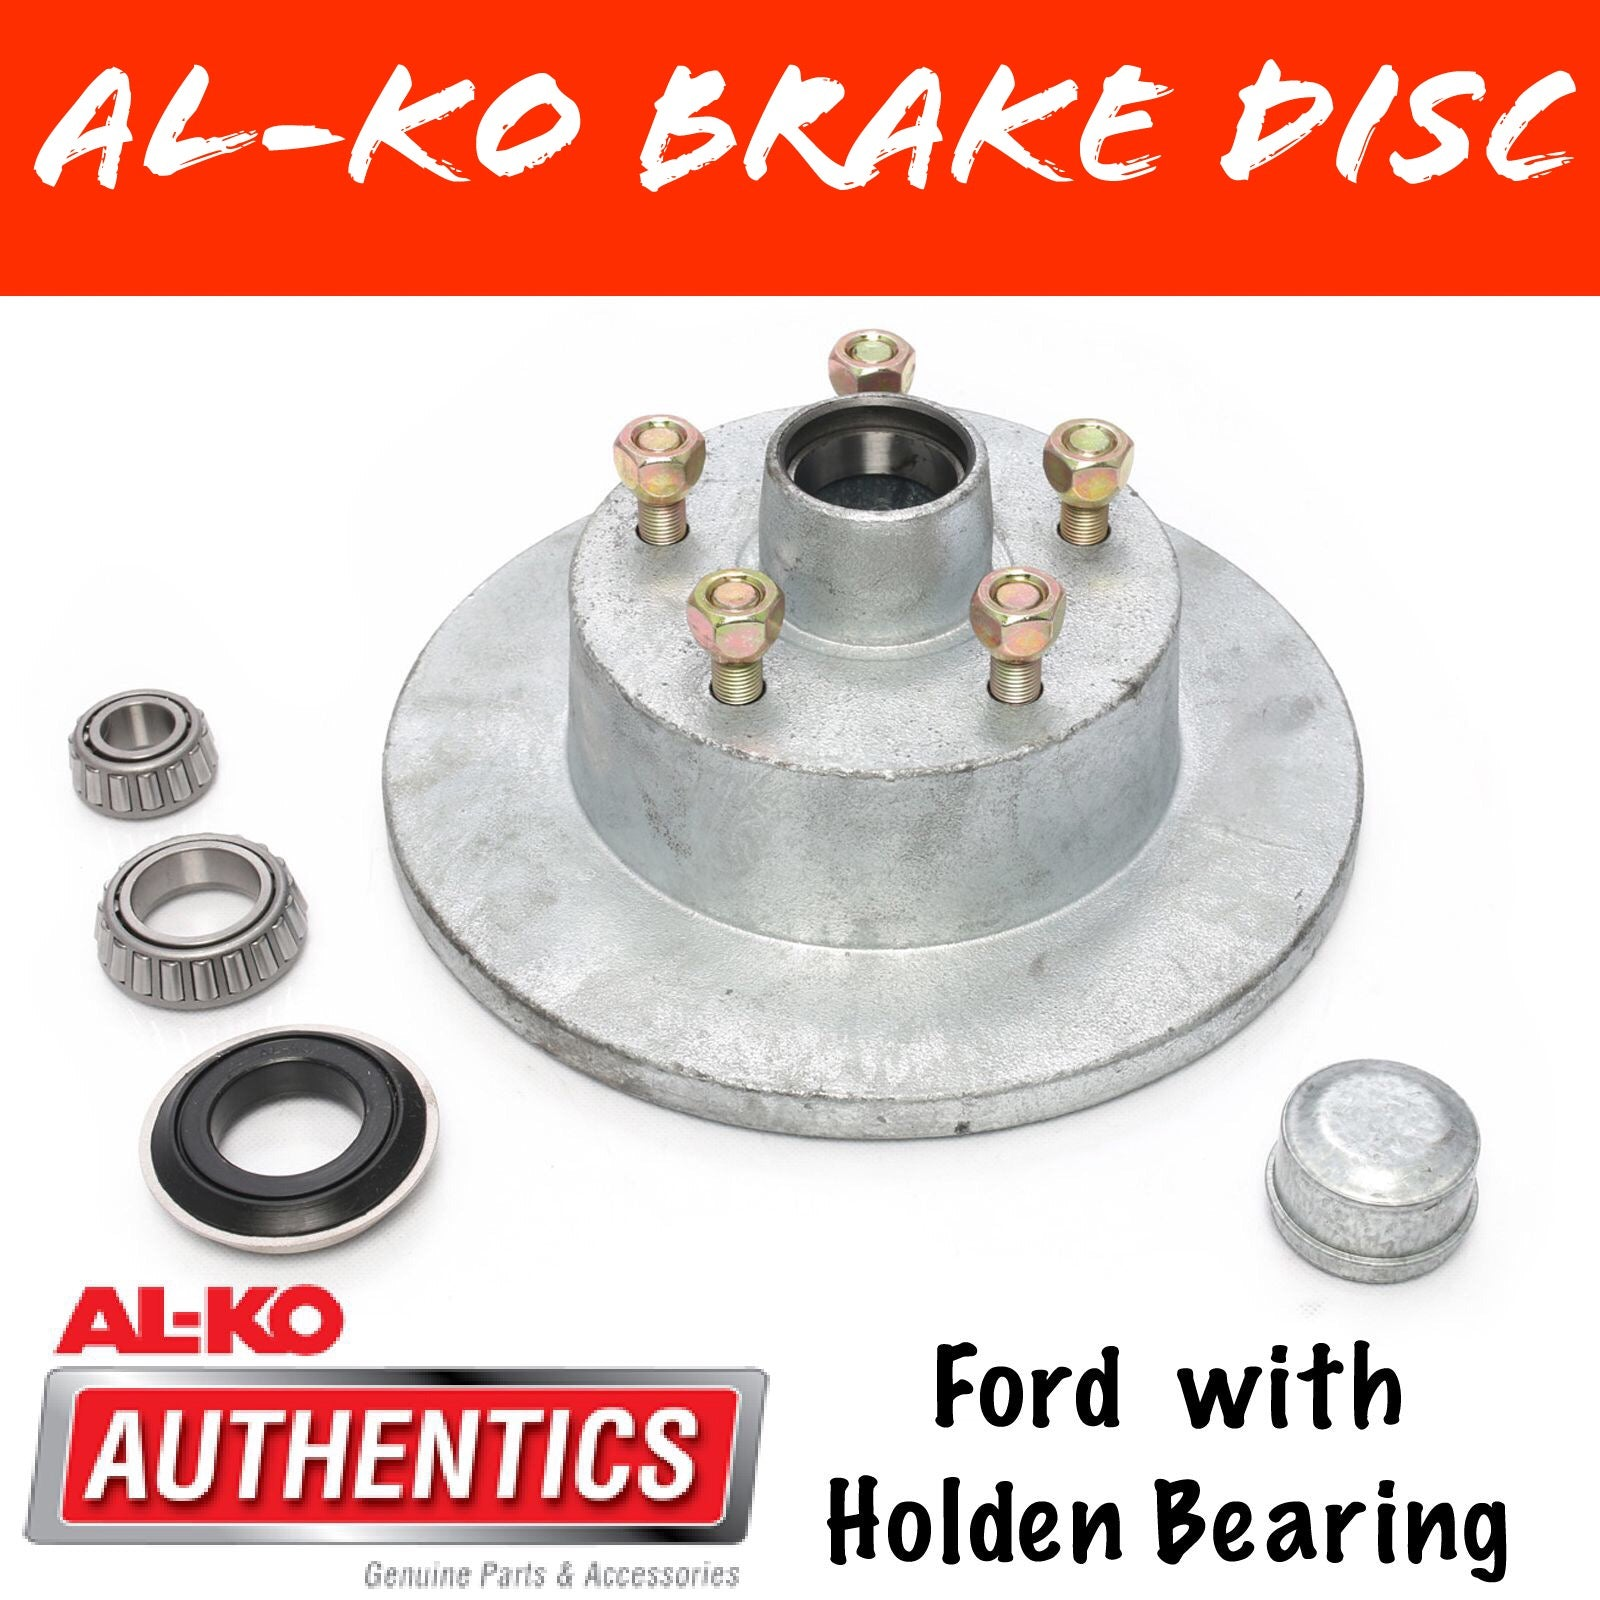 AL-KO Galvanised Ford Brake Disc with Holden Bearings